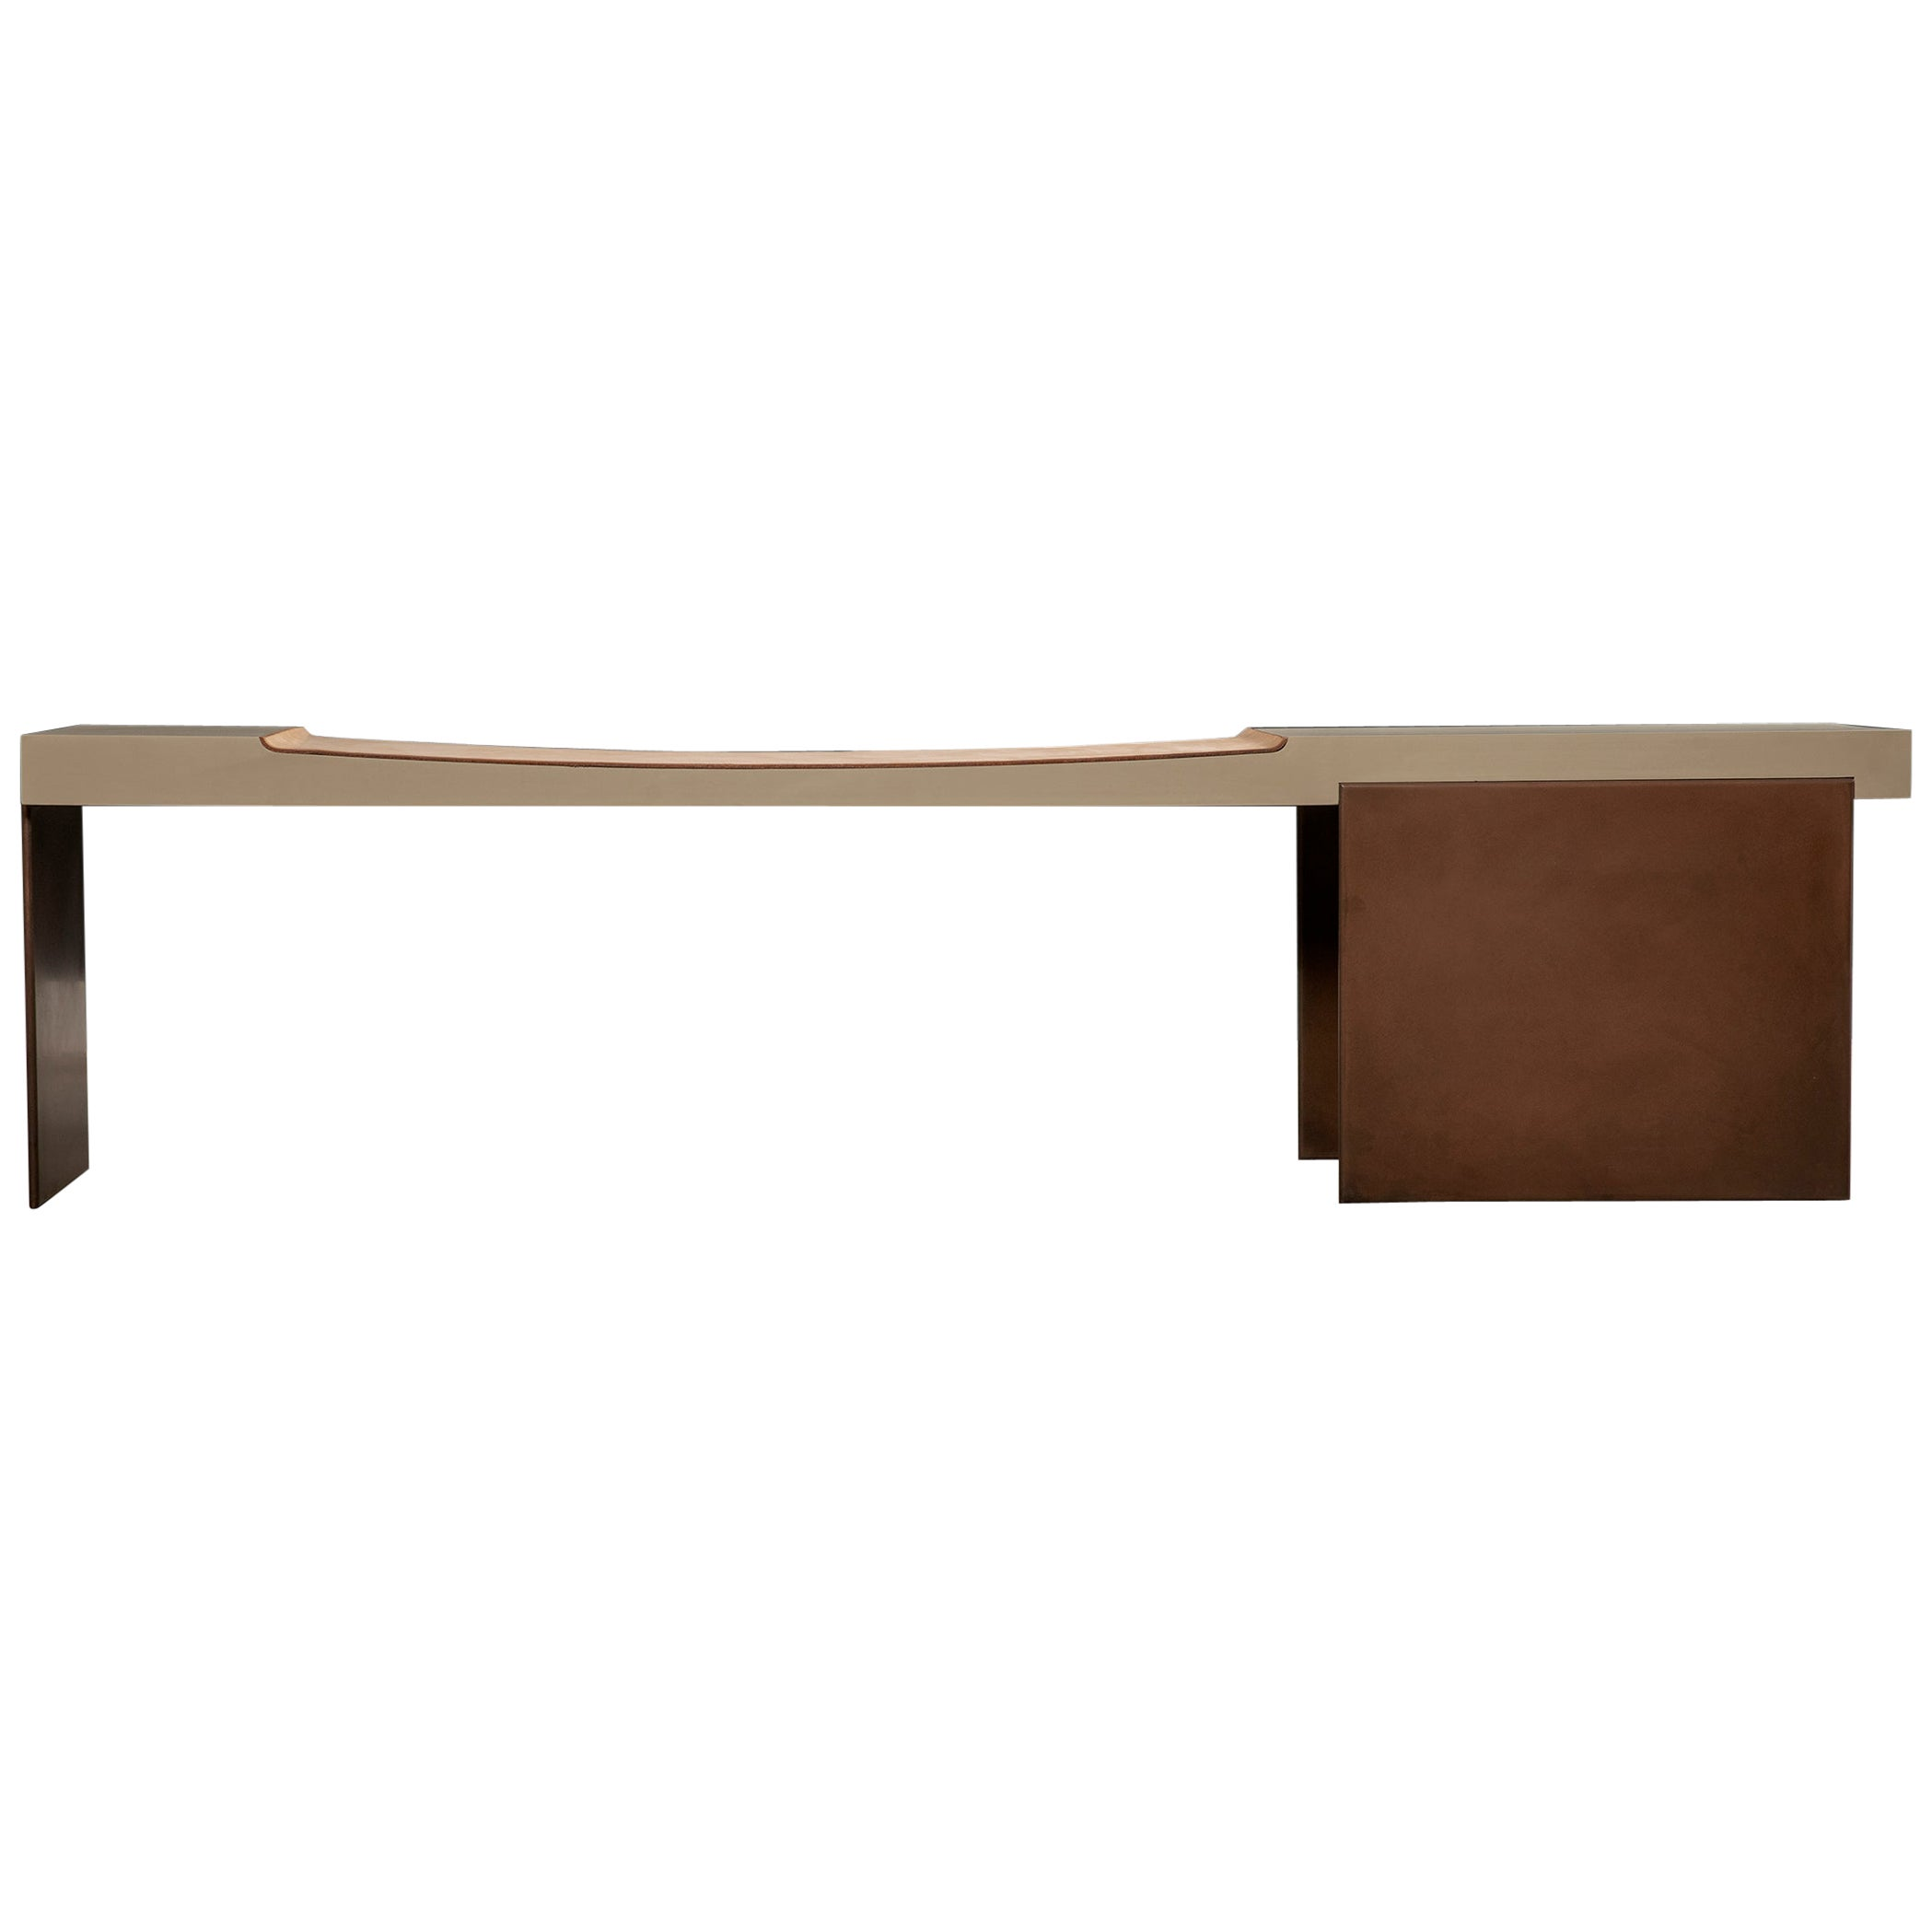 Museum Bench with Nubuck Suede Seating Bronze Finish Legs by Vivian Carbonell